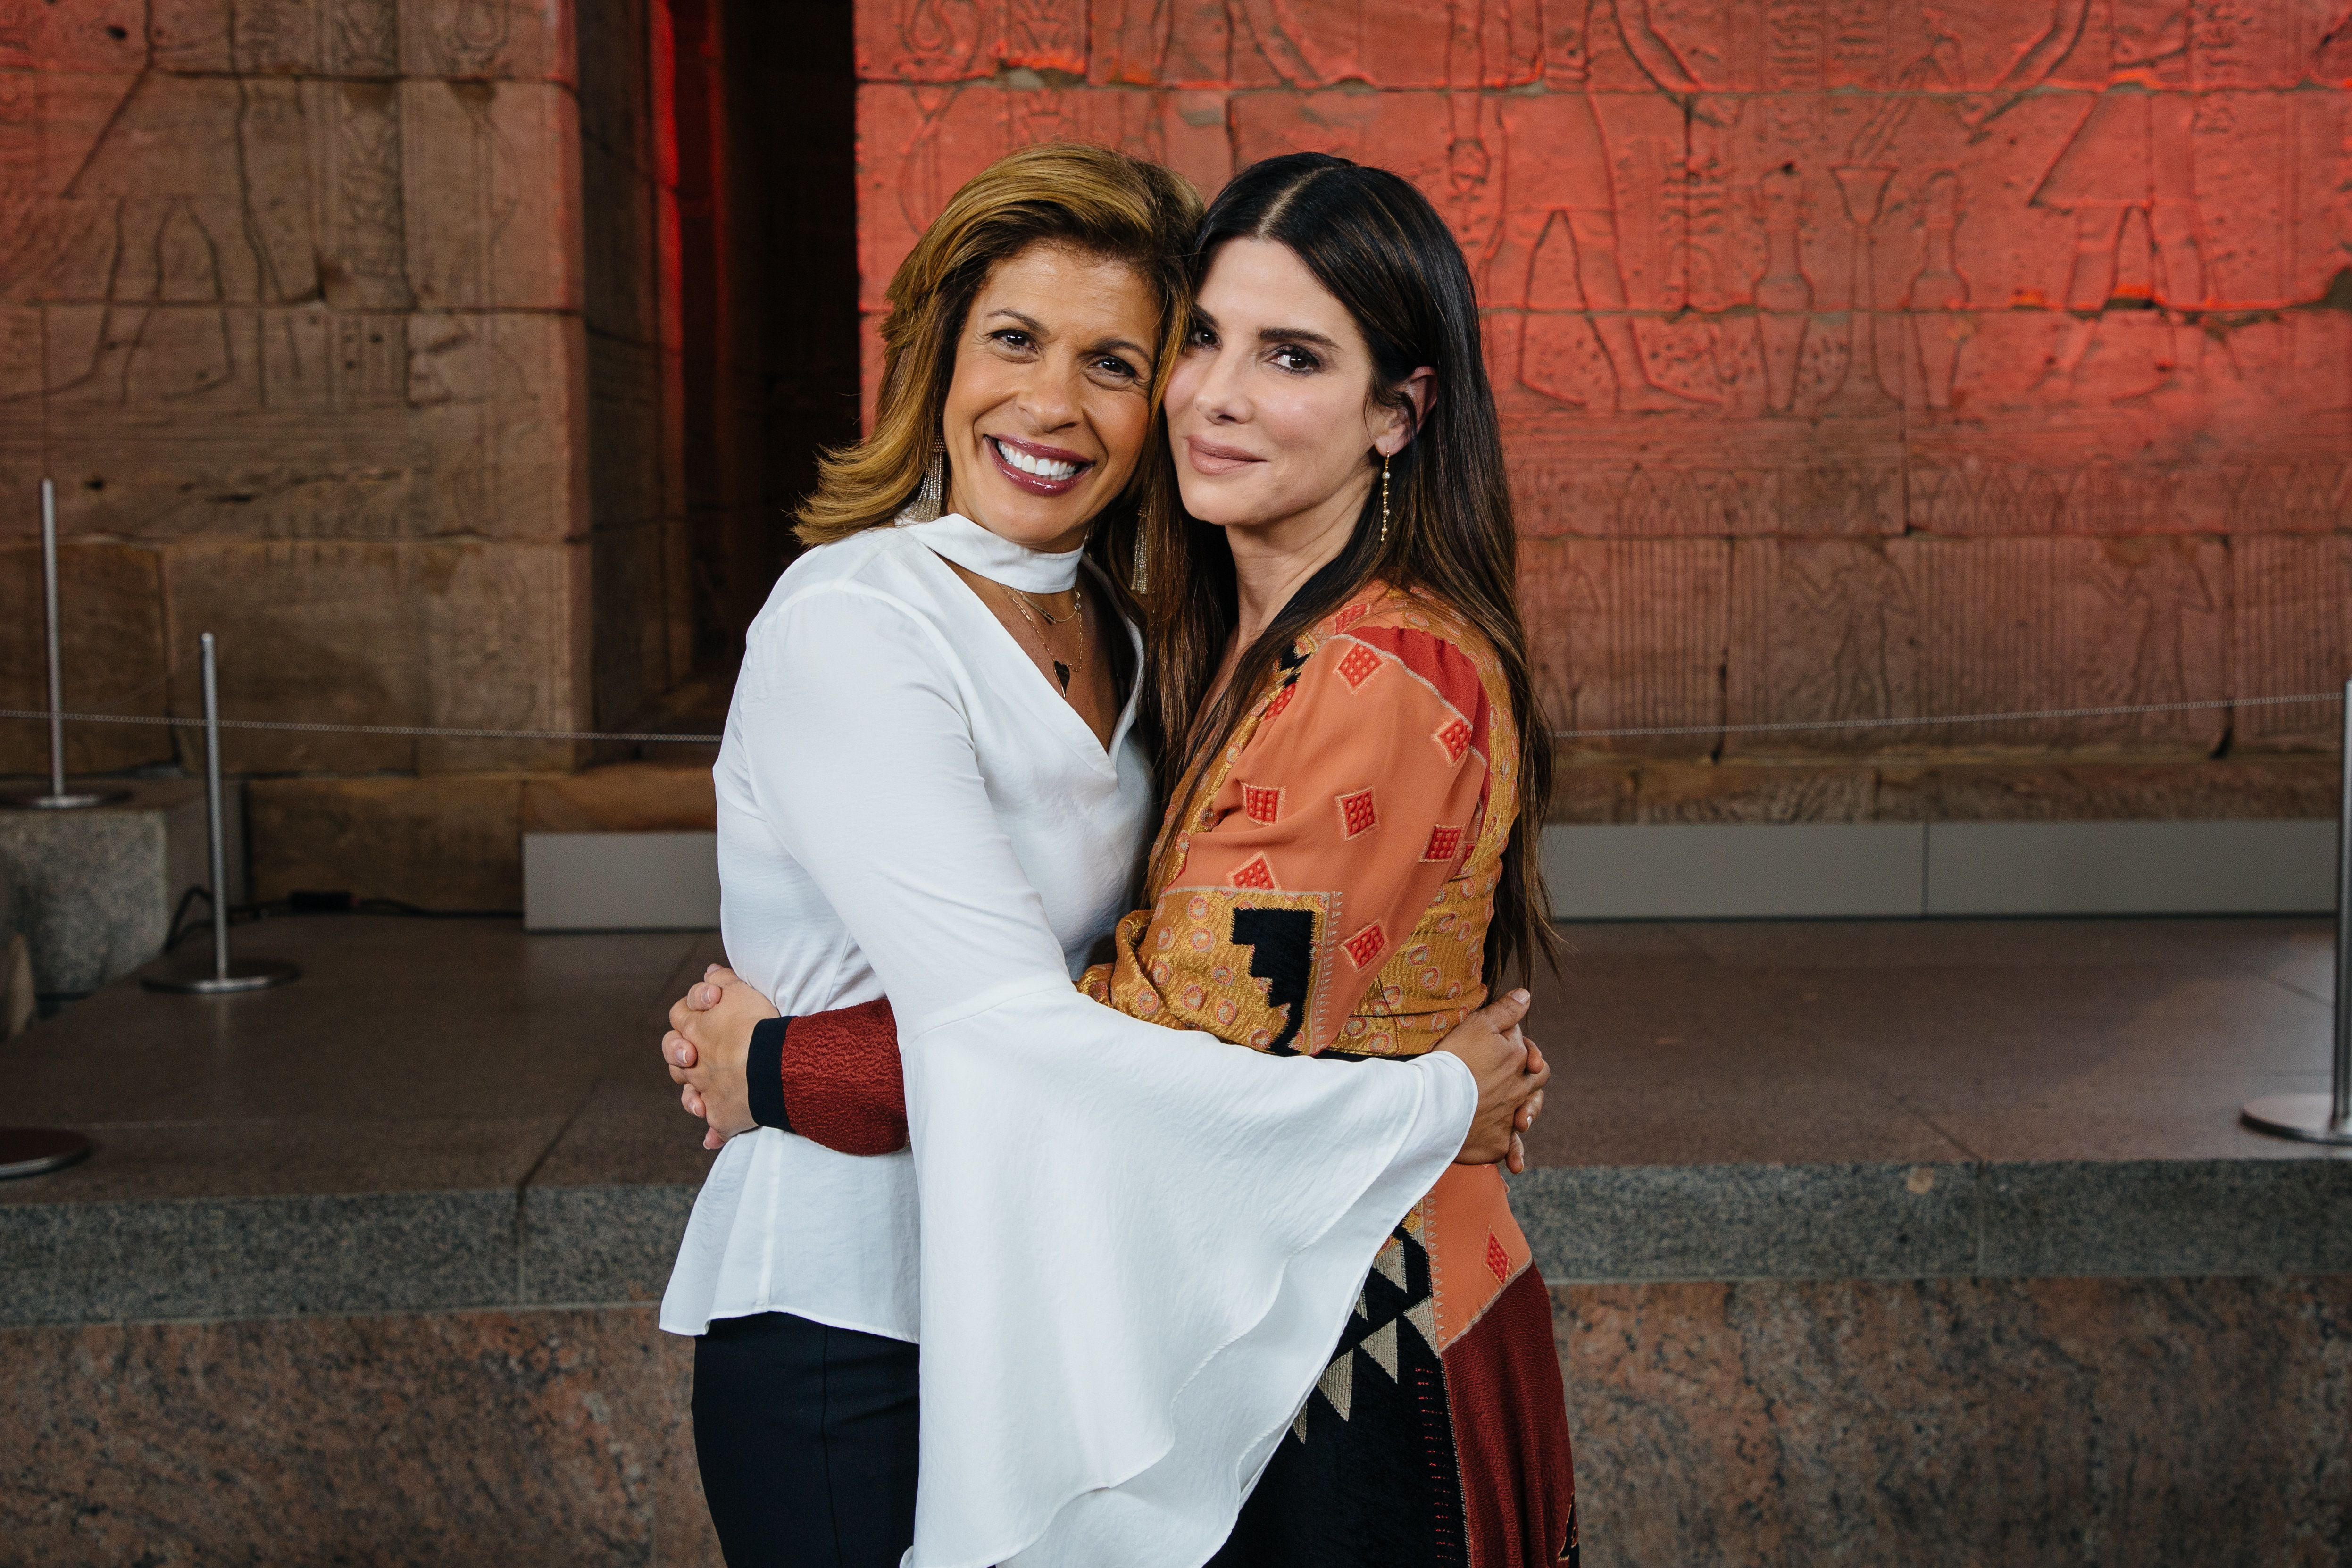 Hoda Kotb (left) interviewed Sandra Bullock about her family and role as a mother.